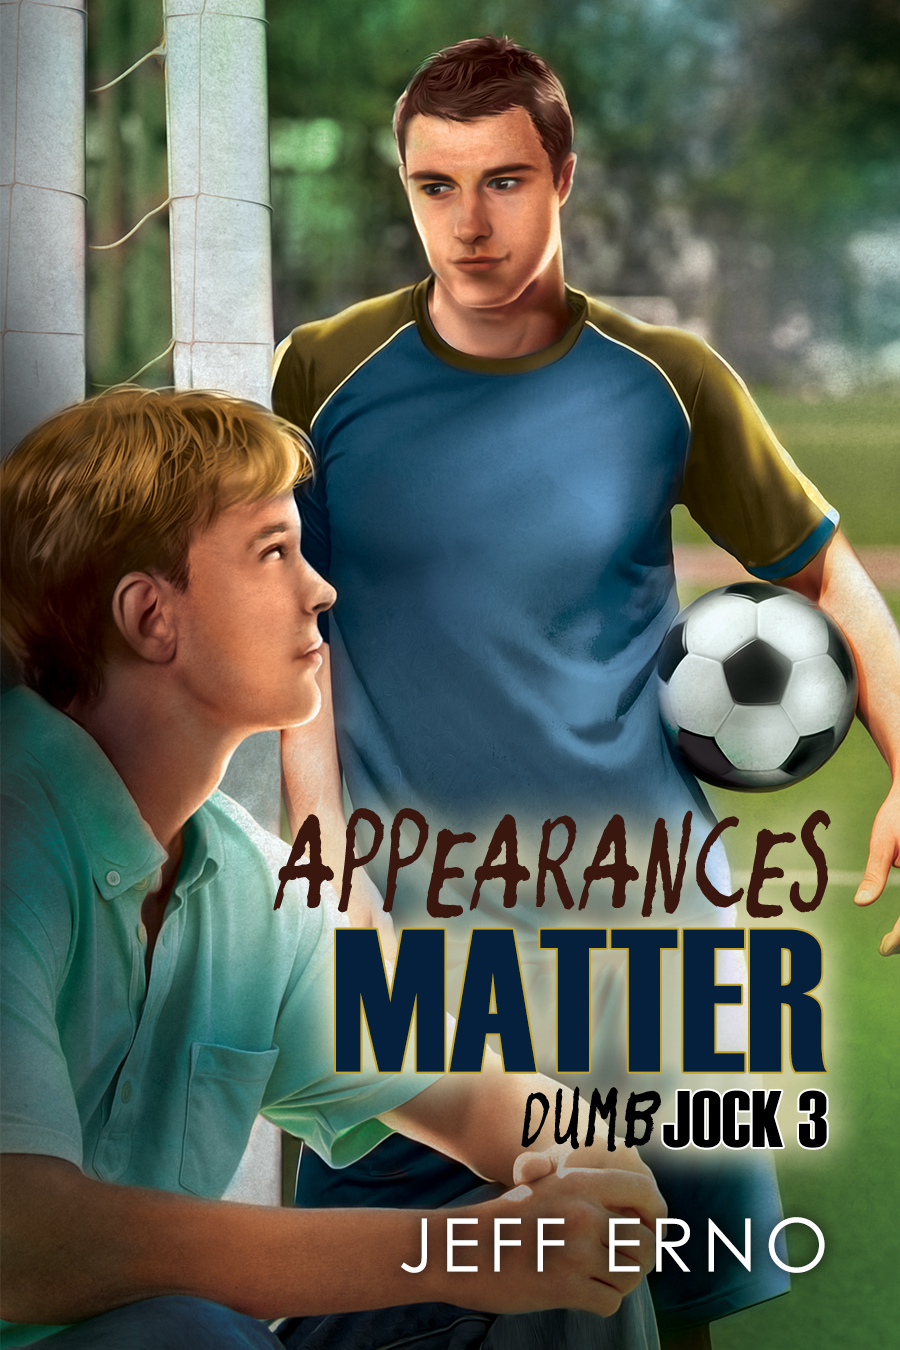 Appearances Matter (Dumb Jock #3) by Jeff Erno